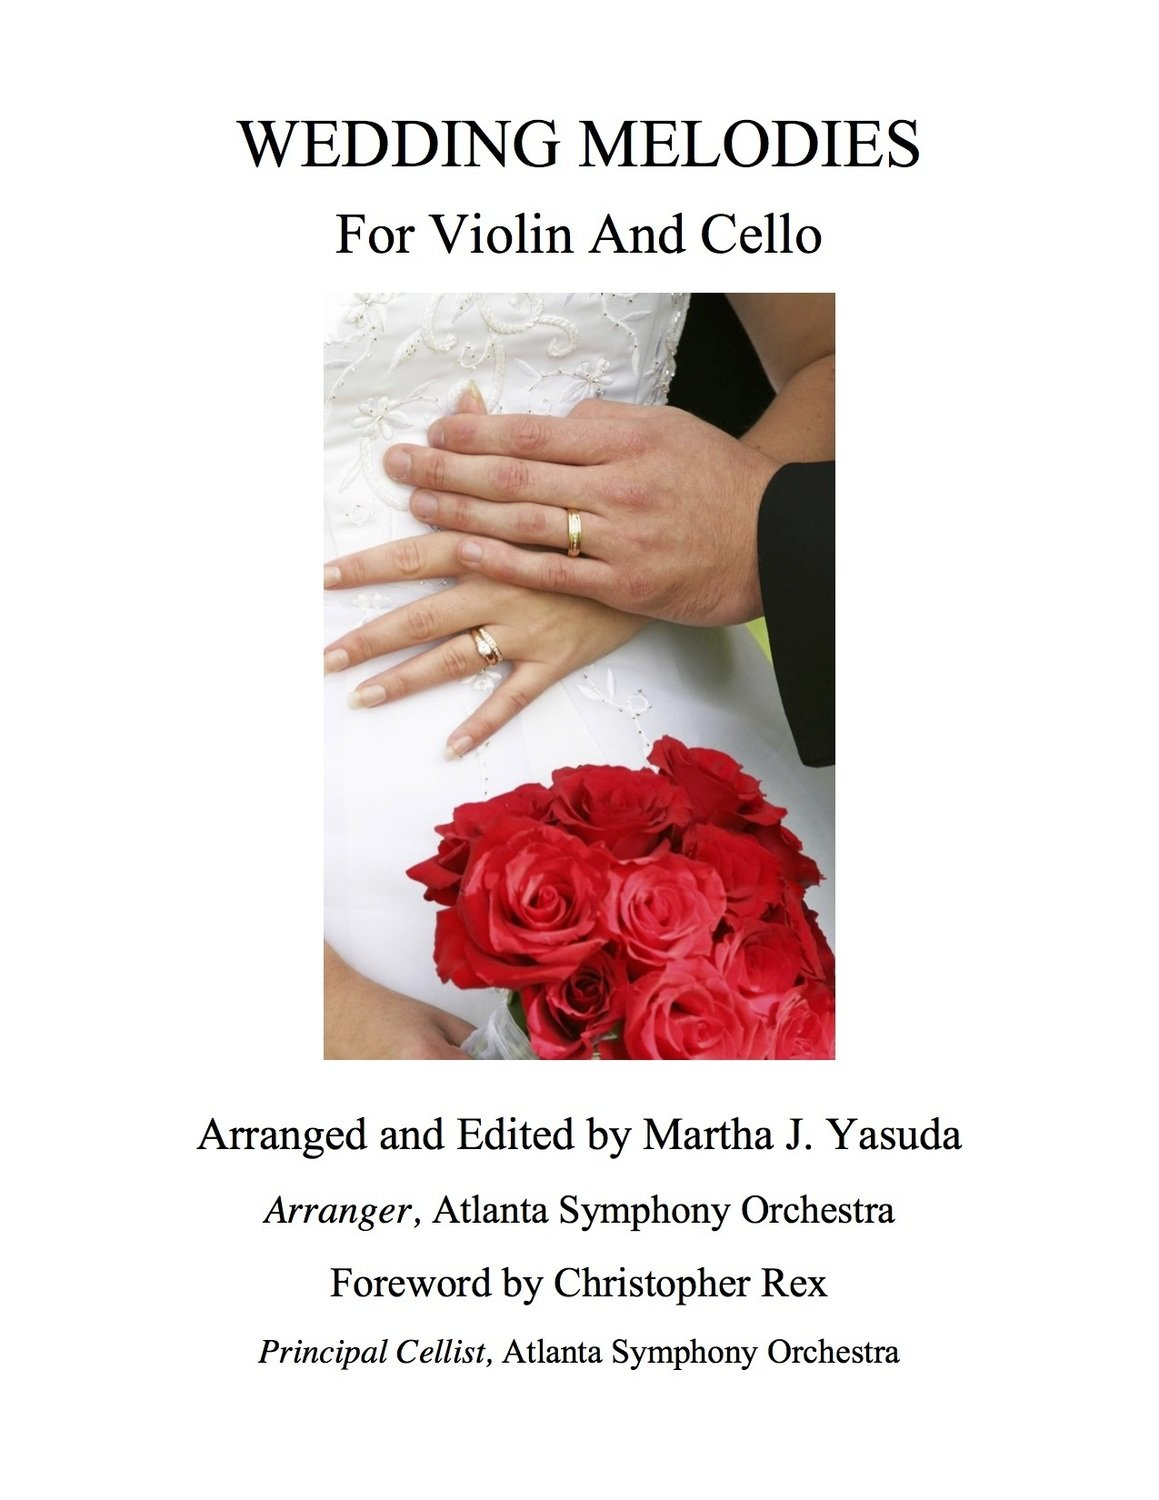 054 - Wedding Melodies For Violin And Cello